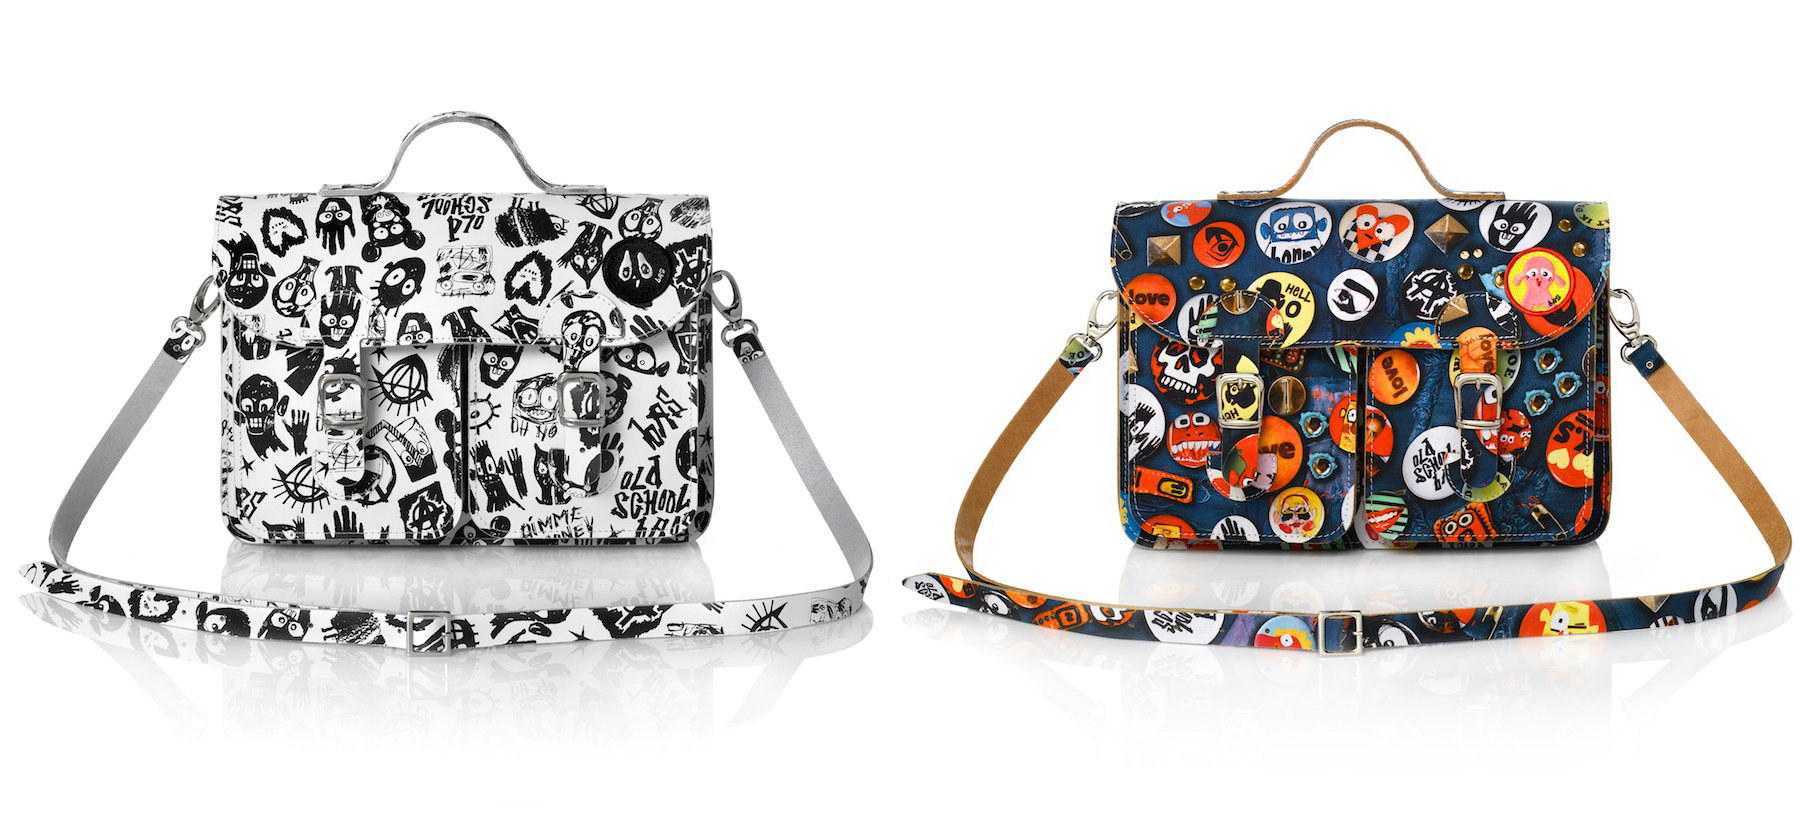 Bas Kosters satchels and shoulder bags